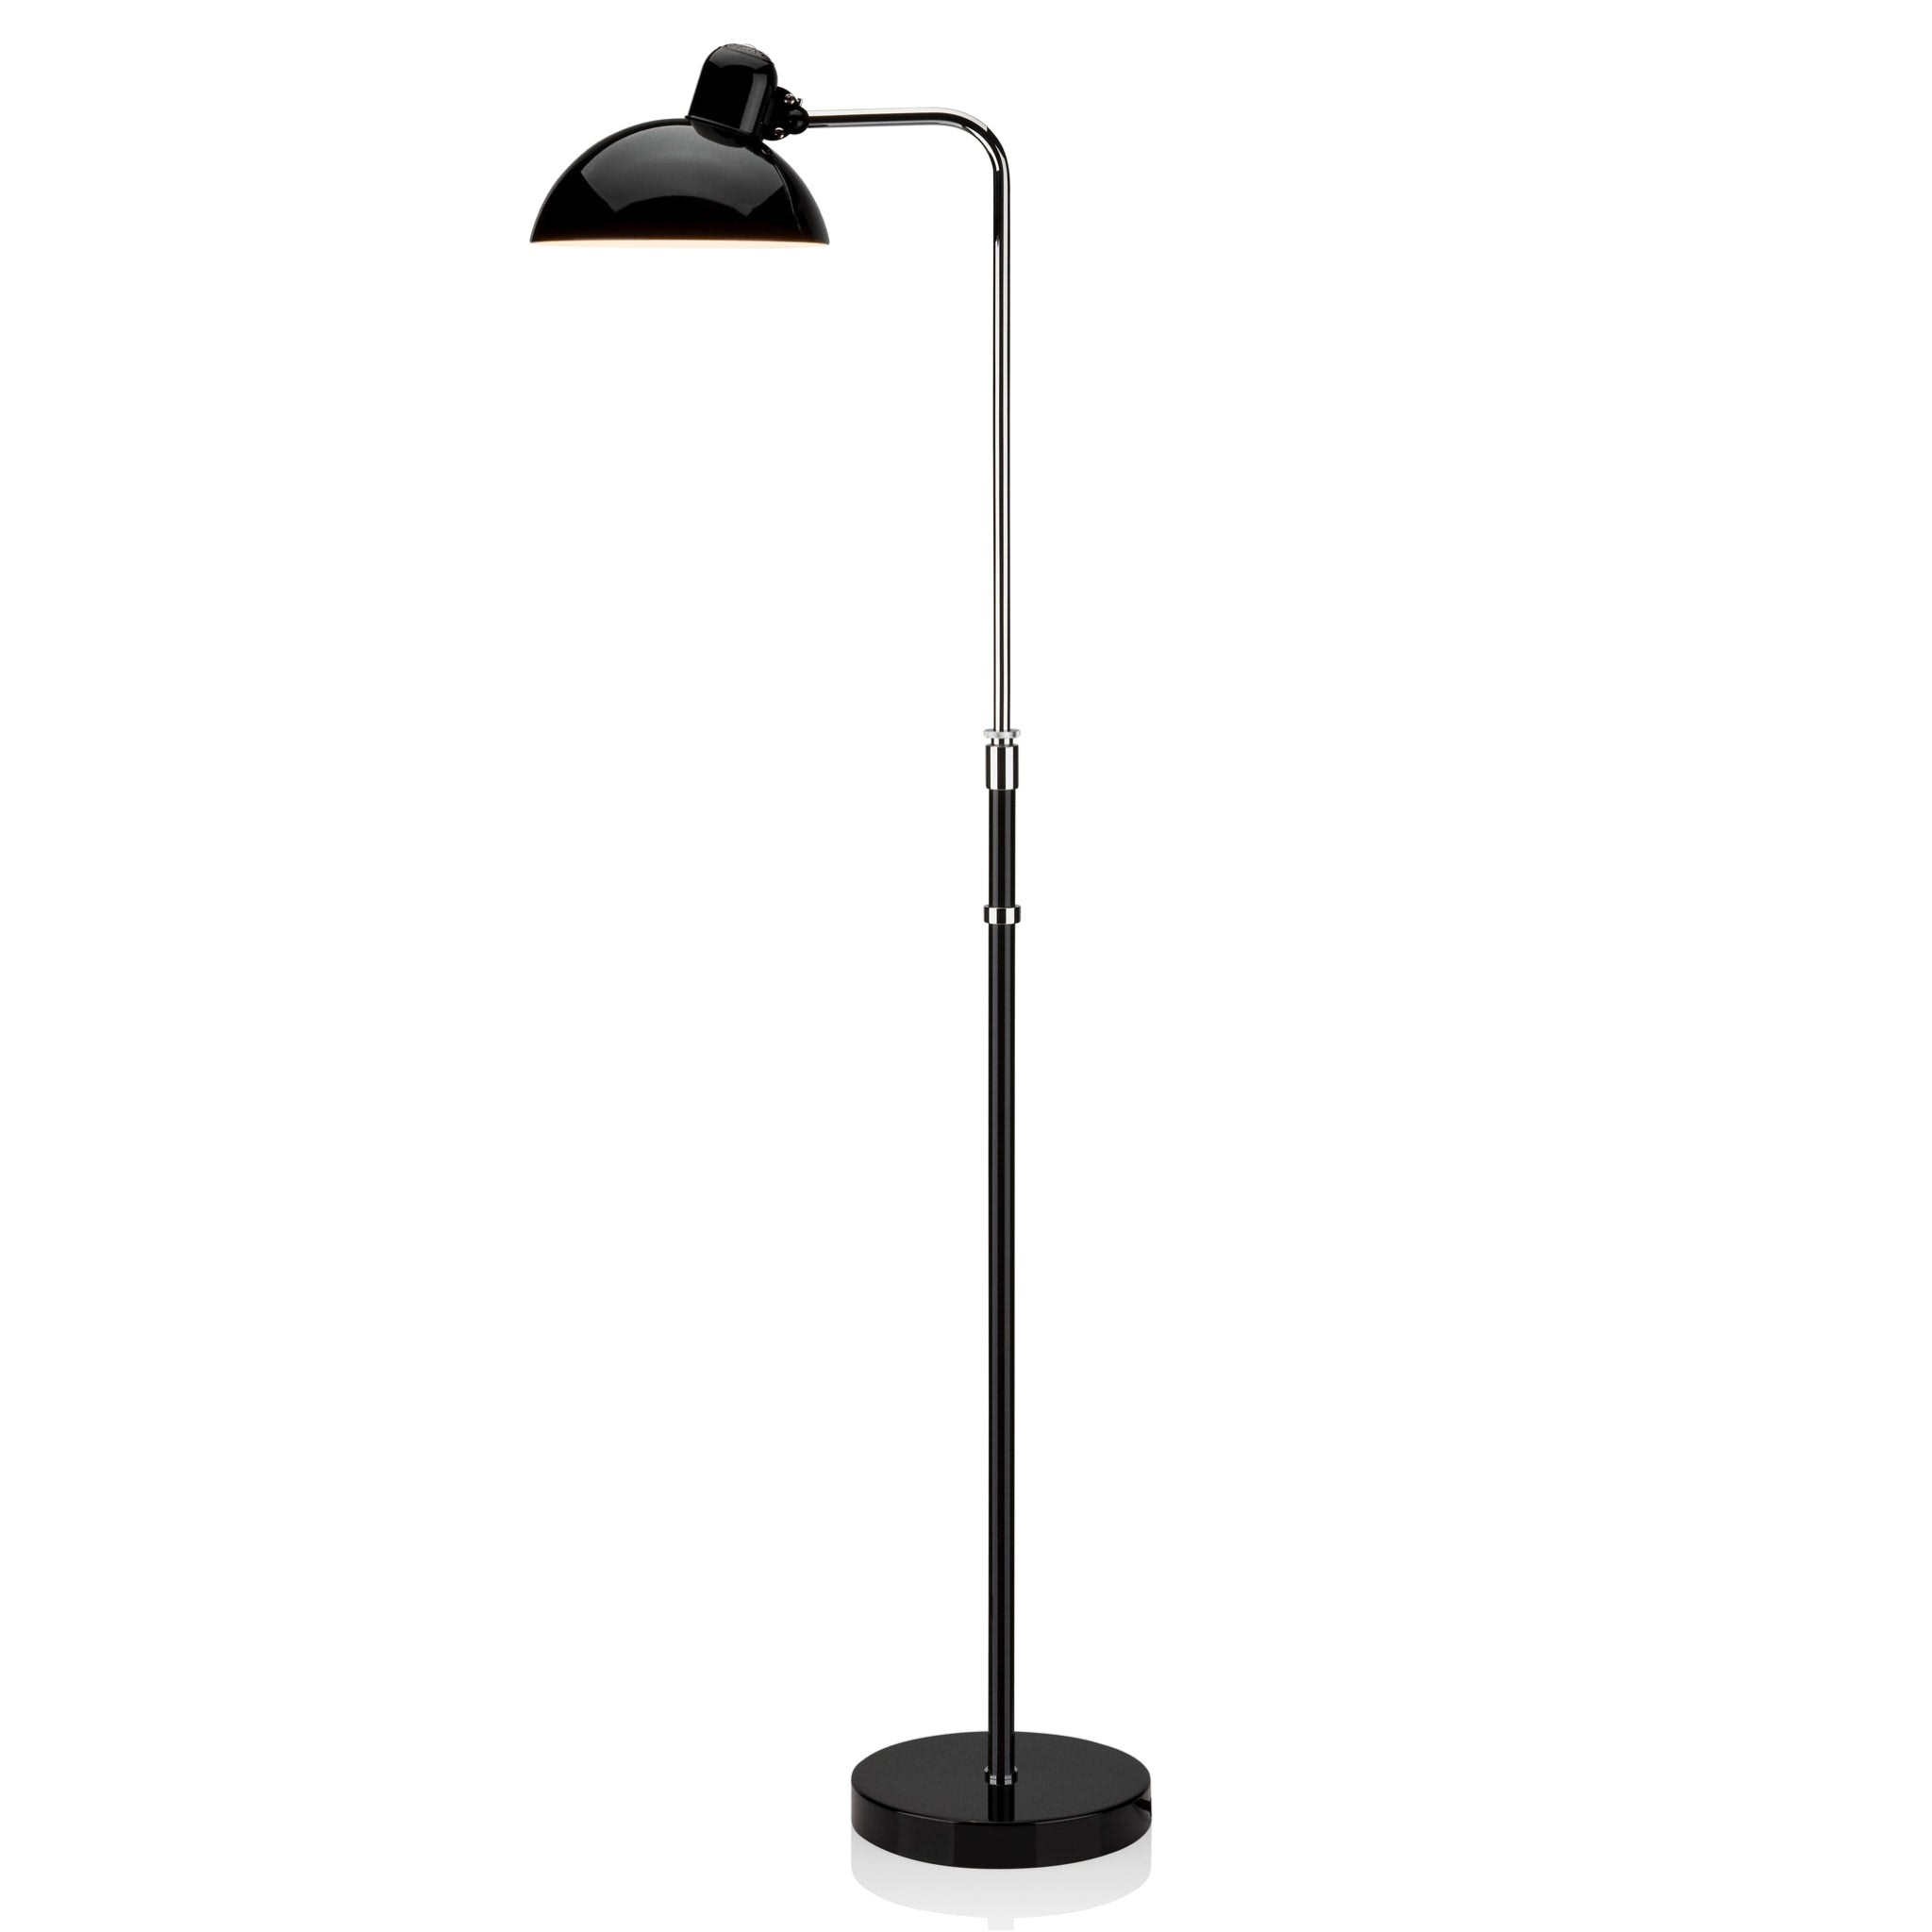 Kaiser idell Luxus Floor Lamp by Fritz Hansen